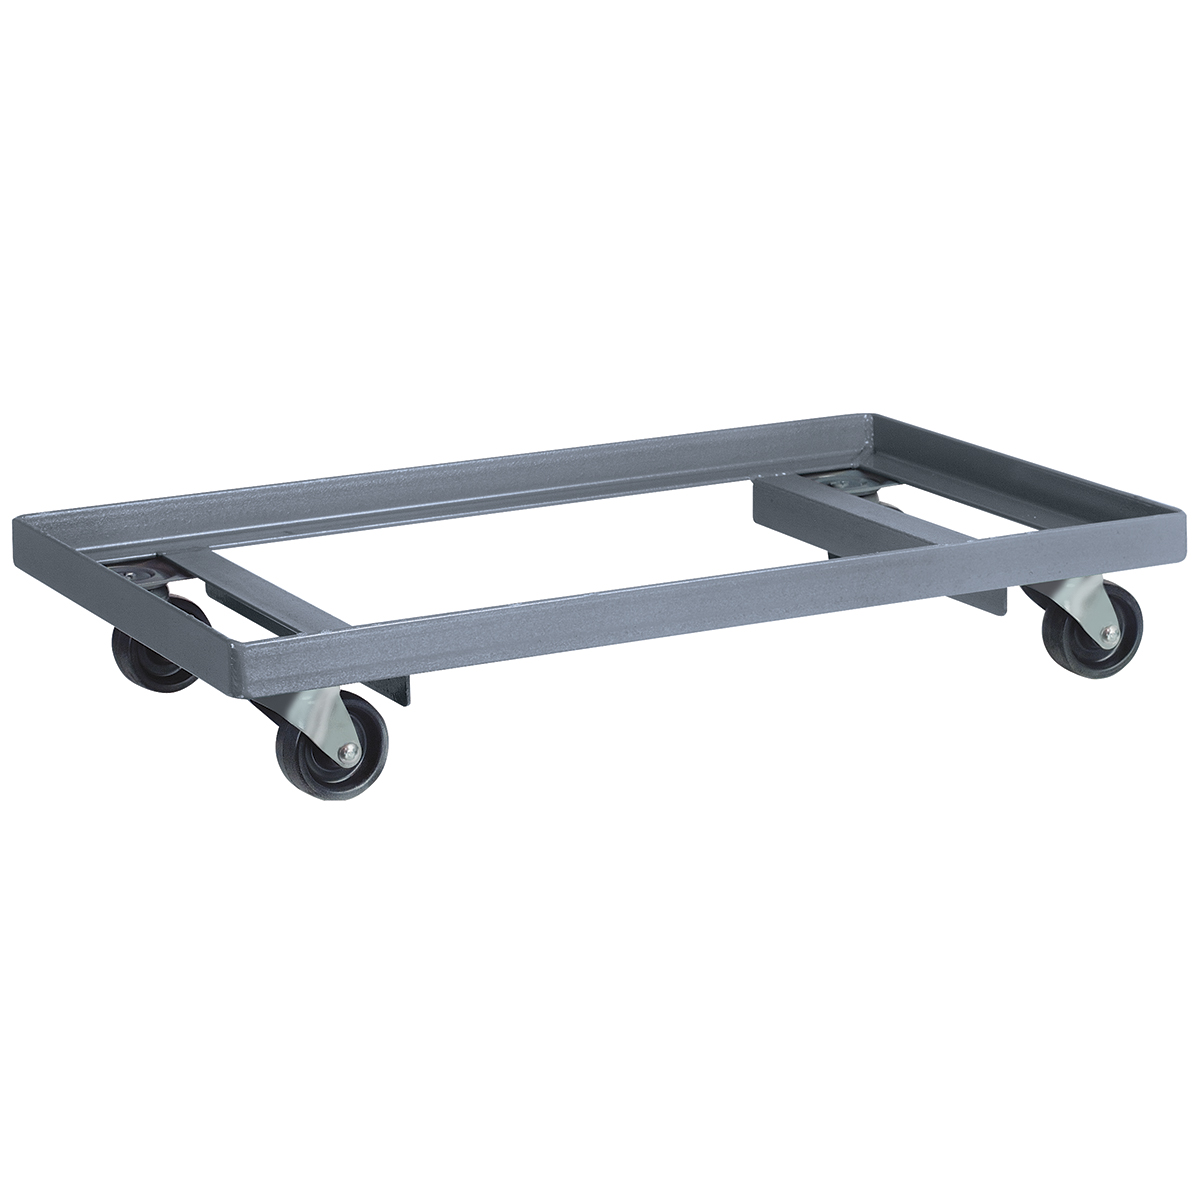 Item DISCONTINUED by Manufacturer.  Steel Dolly, 17x27, N/A3